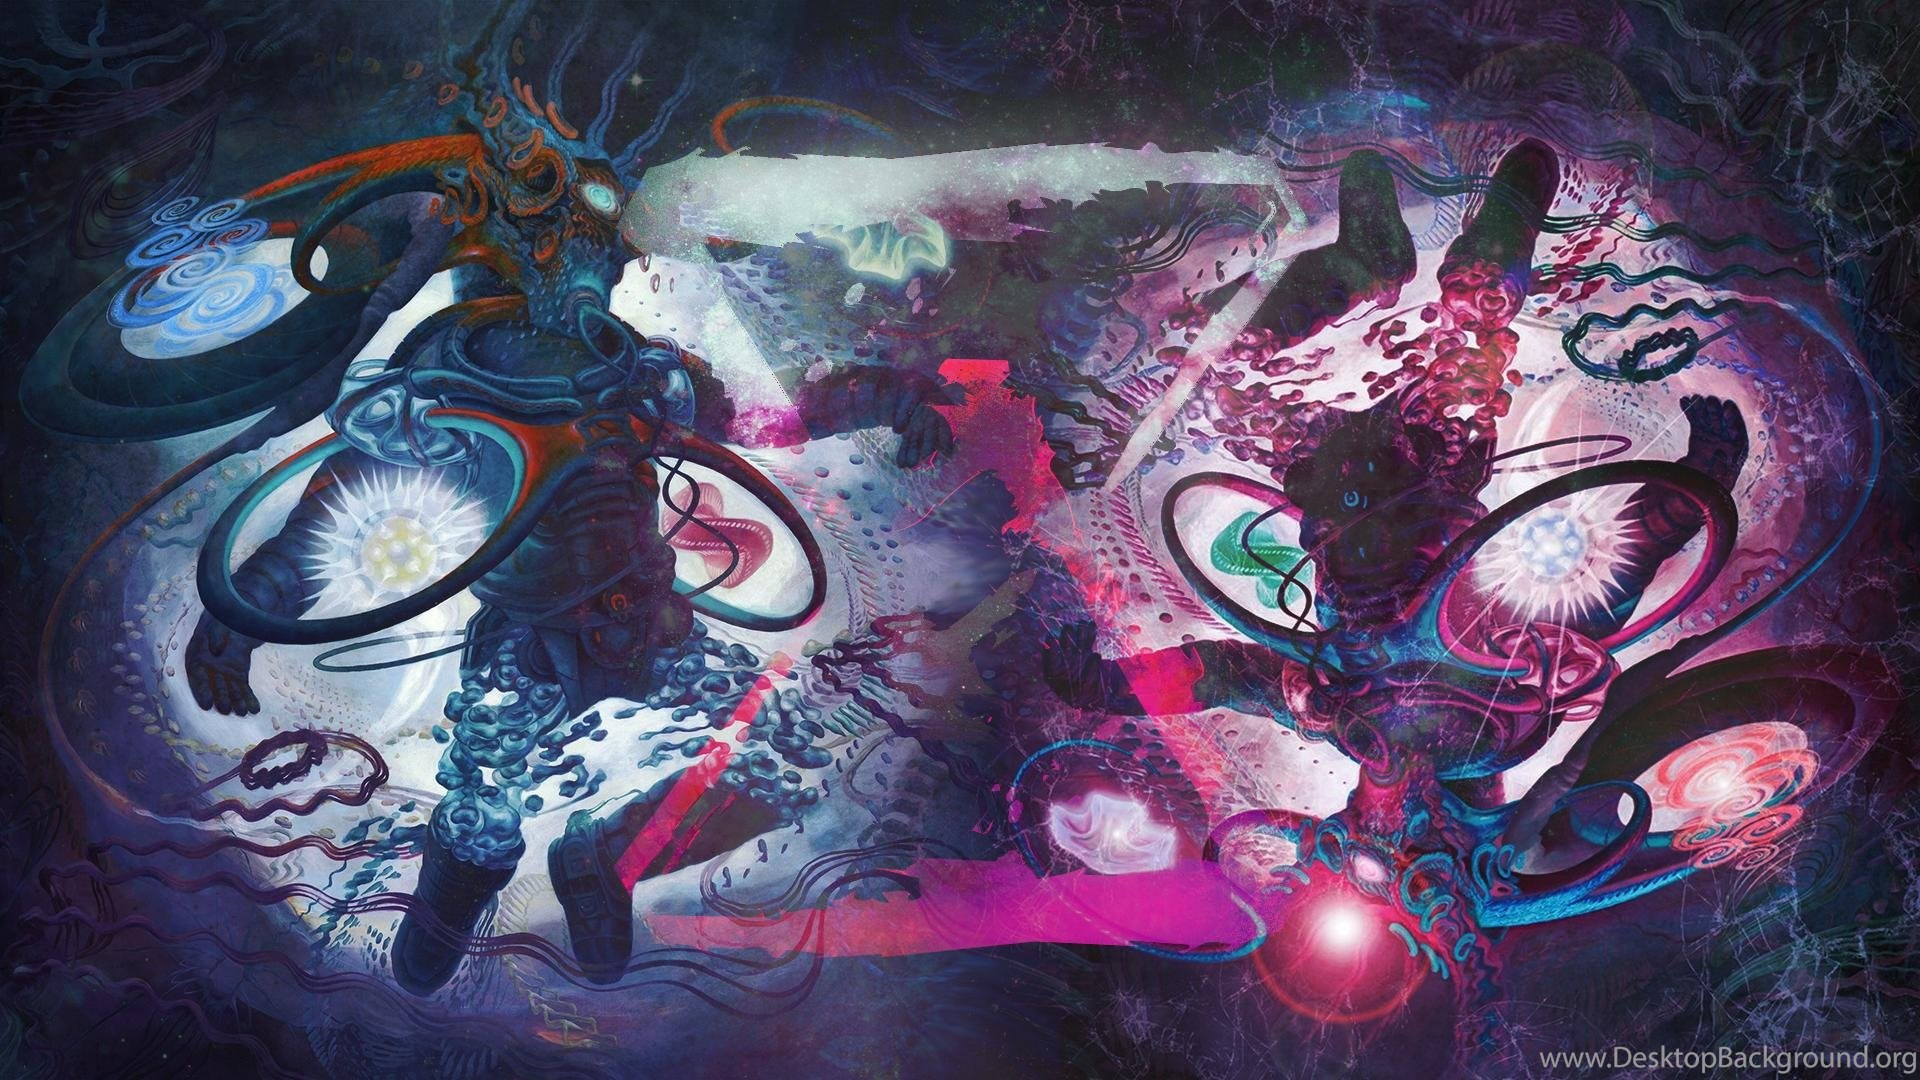 Coheed And Cambria The Afterman Ascension Descension Wallpapers